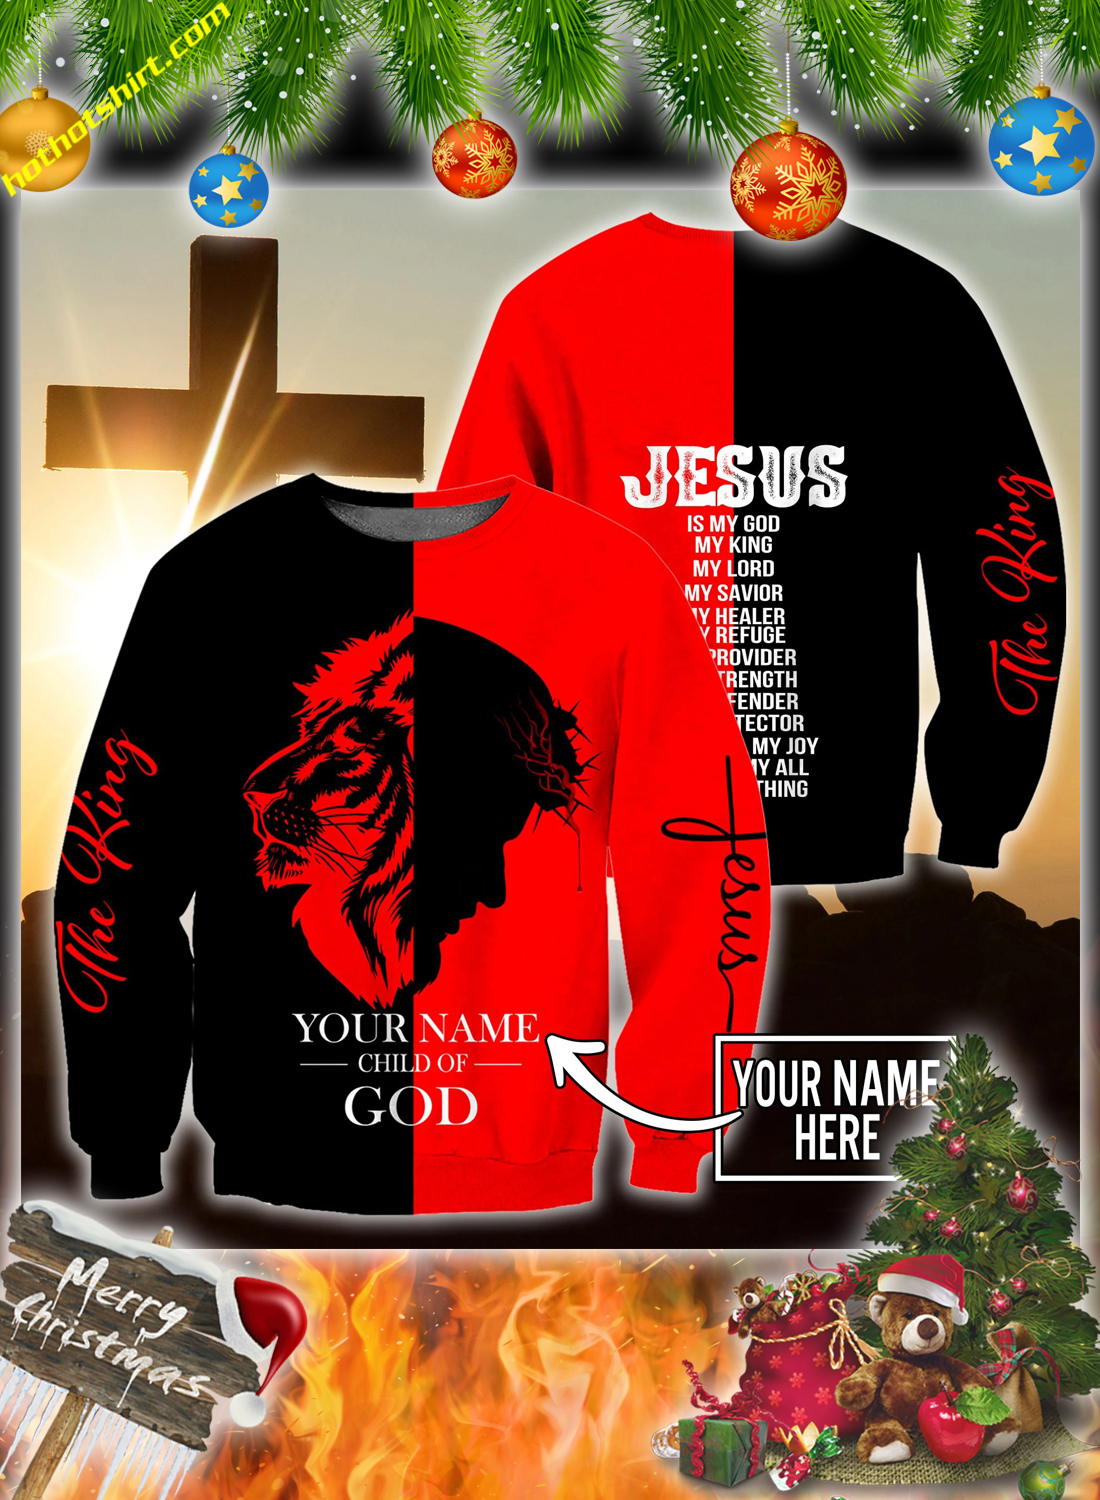 Peronalized custom name Jesus child of god 3d all over printed hoodie and shirt 4